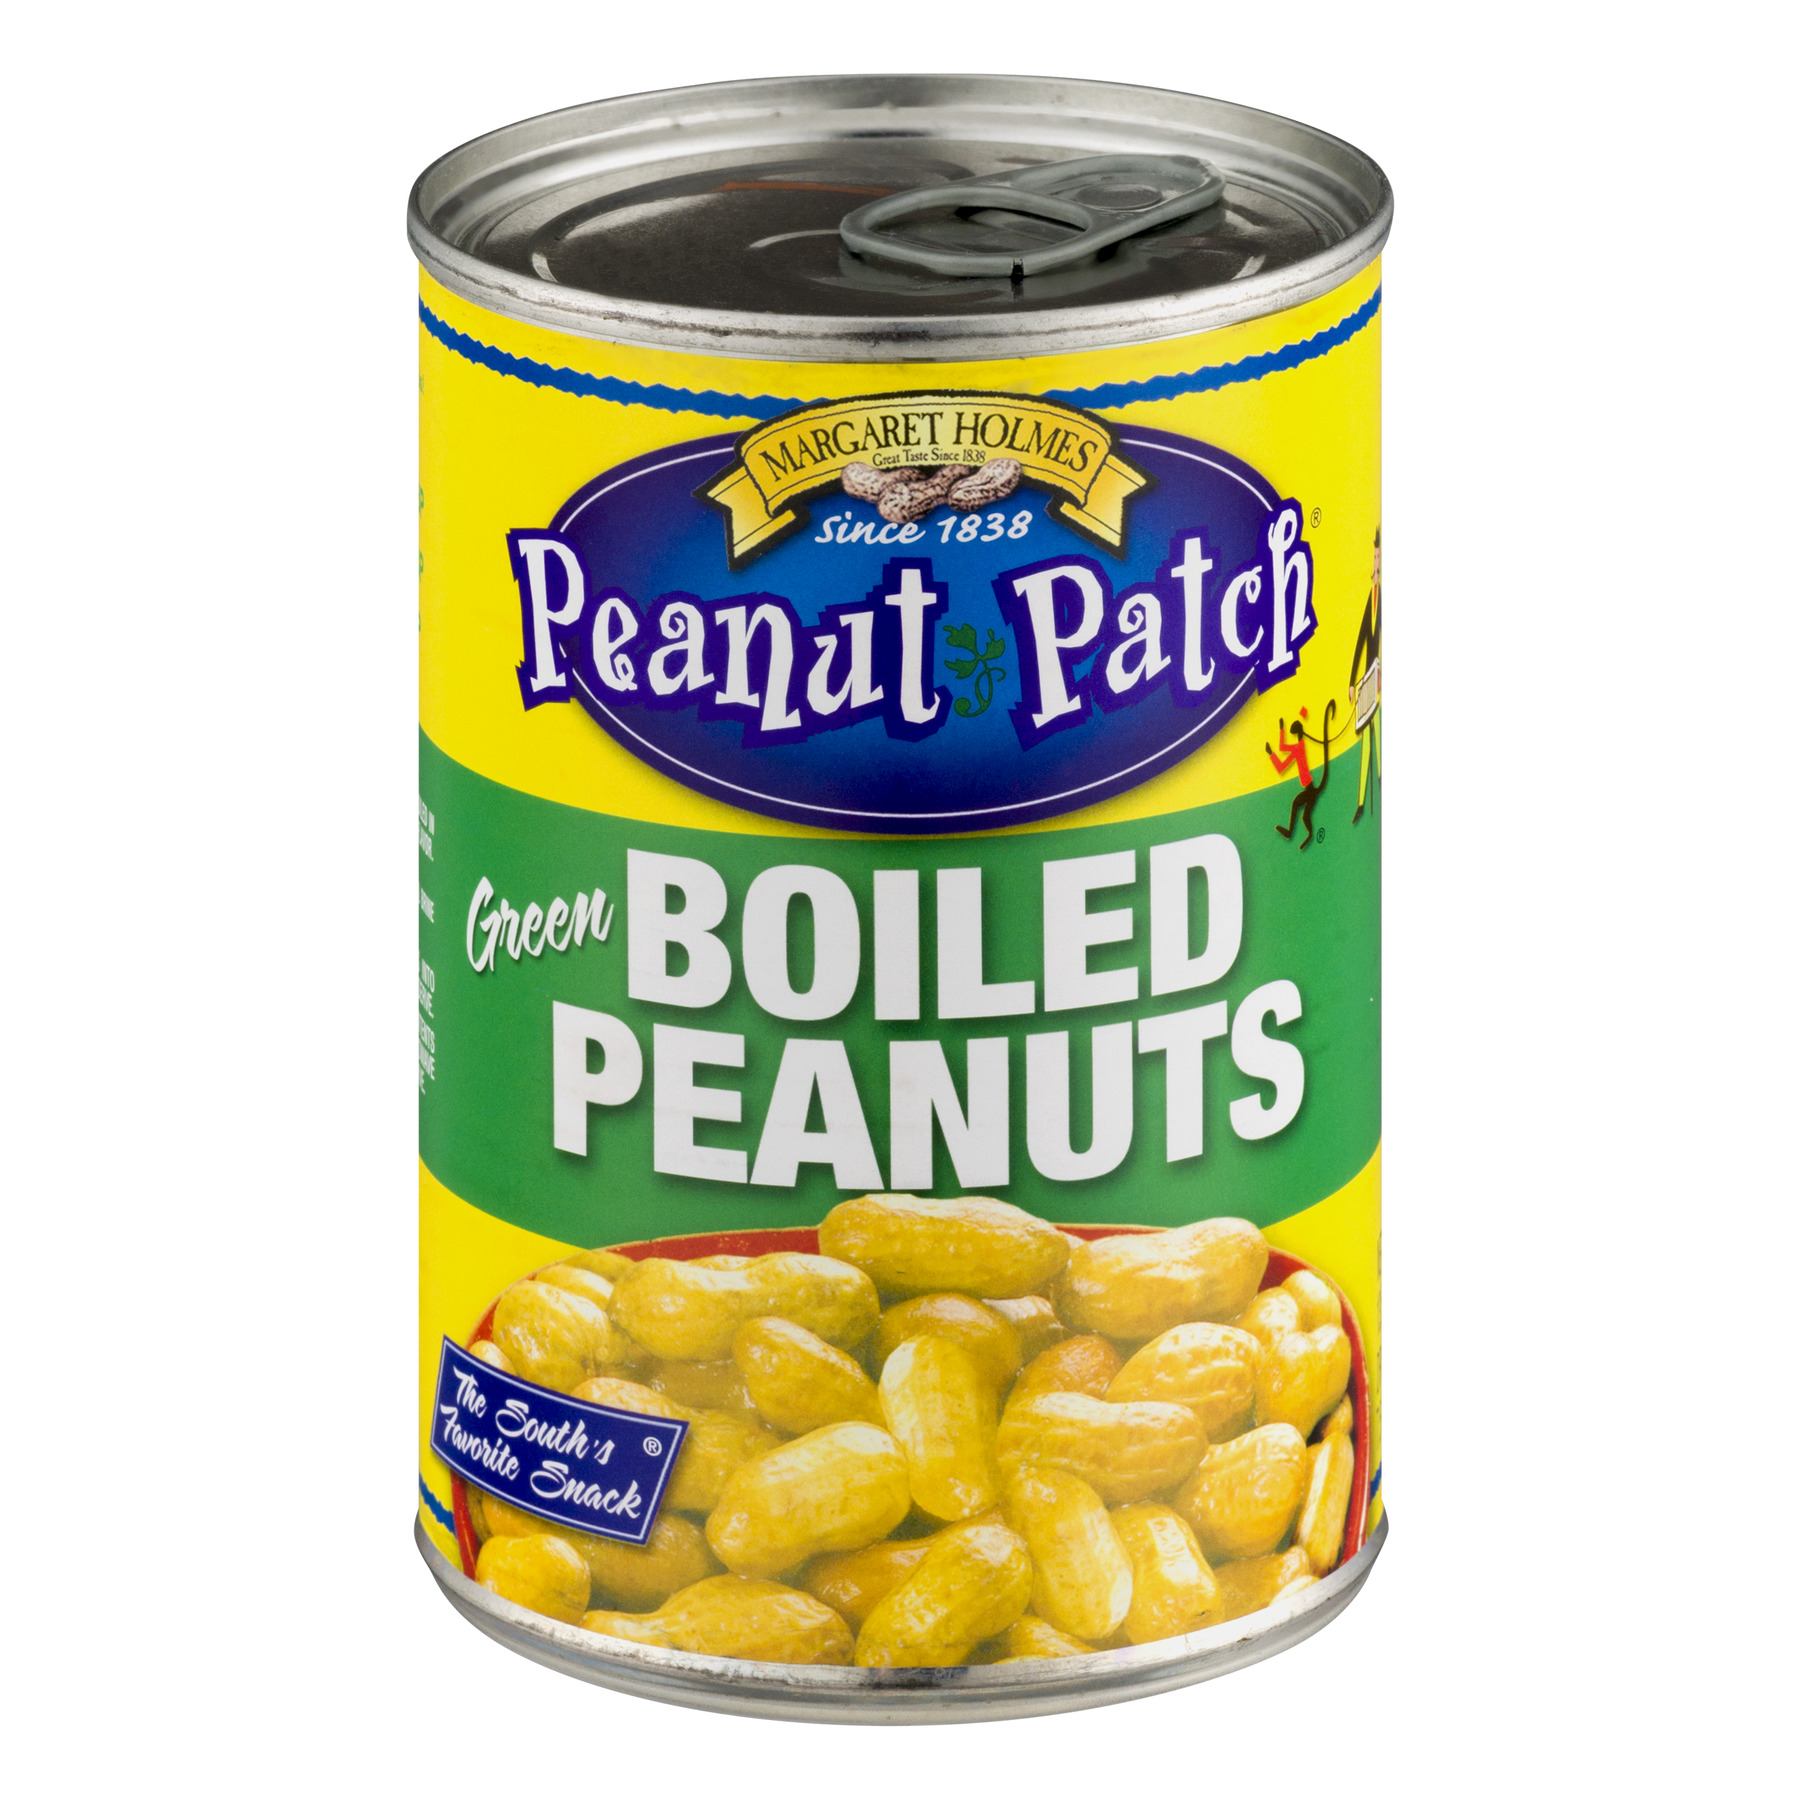 Margaret Holmes Green Boiled Peanut Patch, 13.5 oz